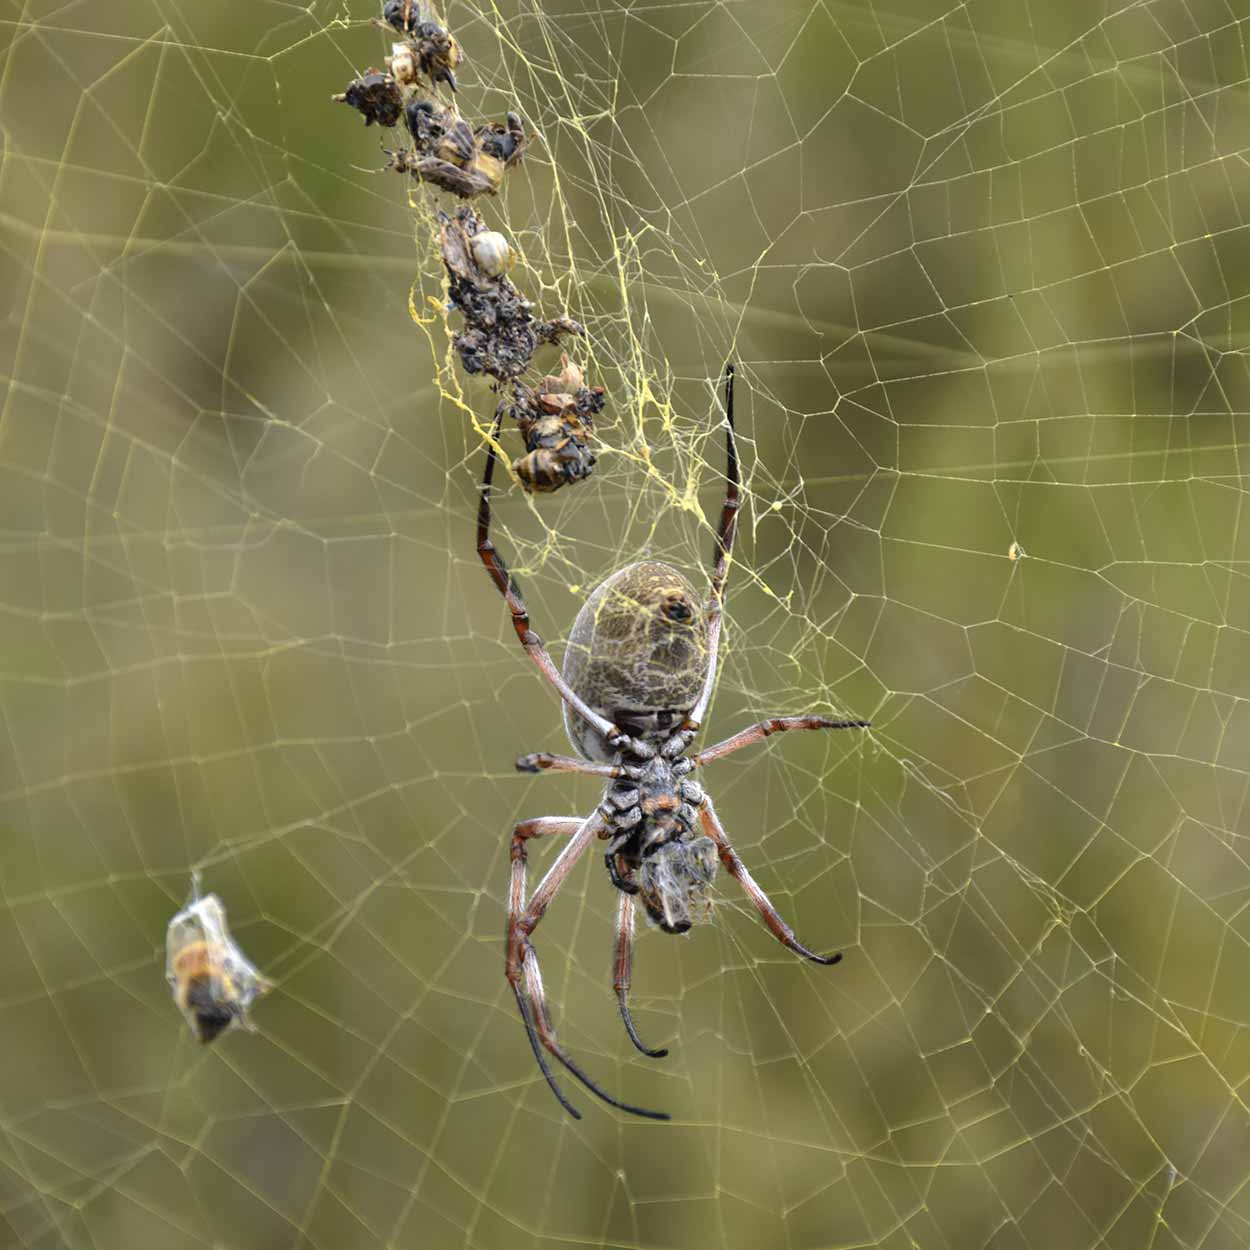 Large spider on the Valley Loop Trail, Mundy Regional Park, Perth, Western Australia